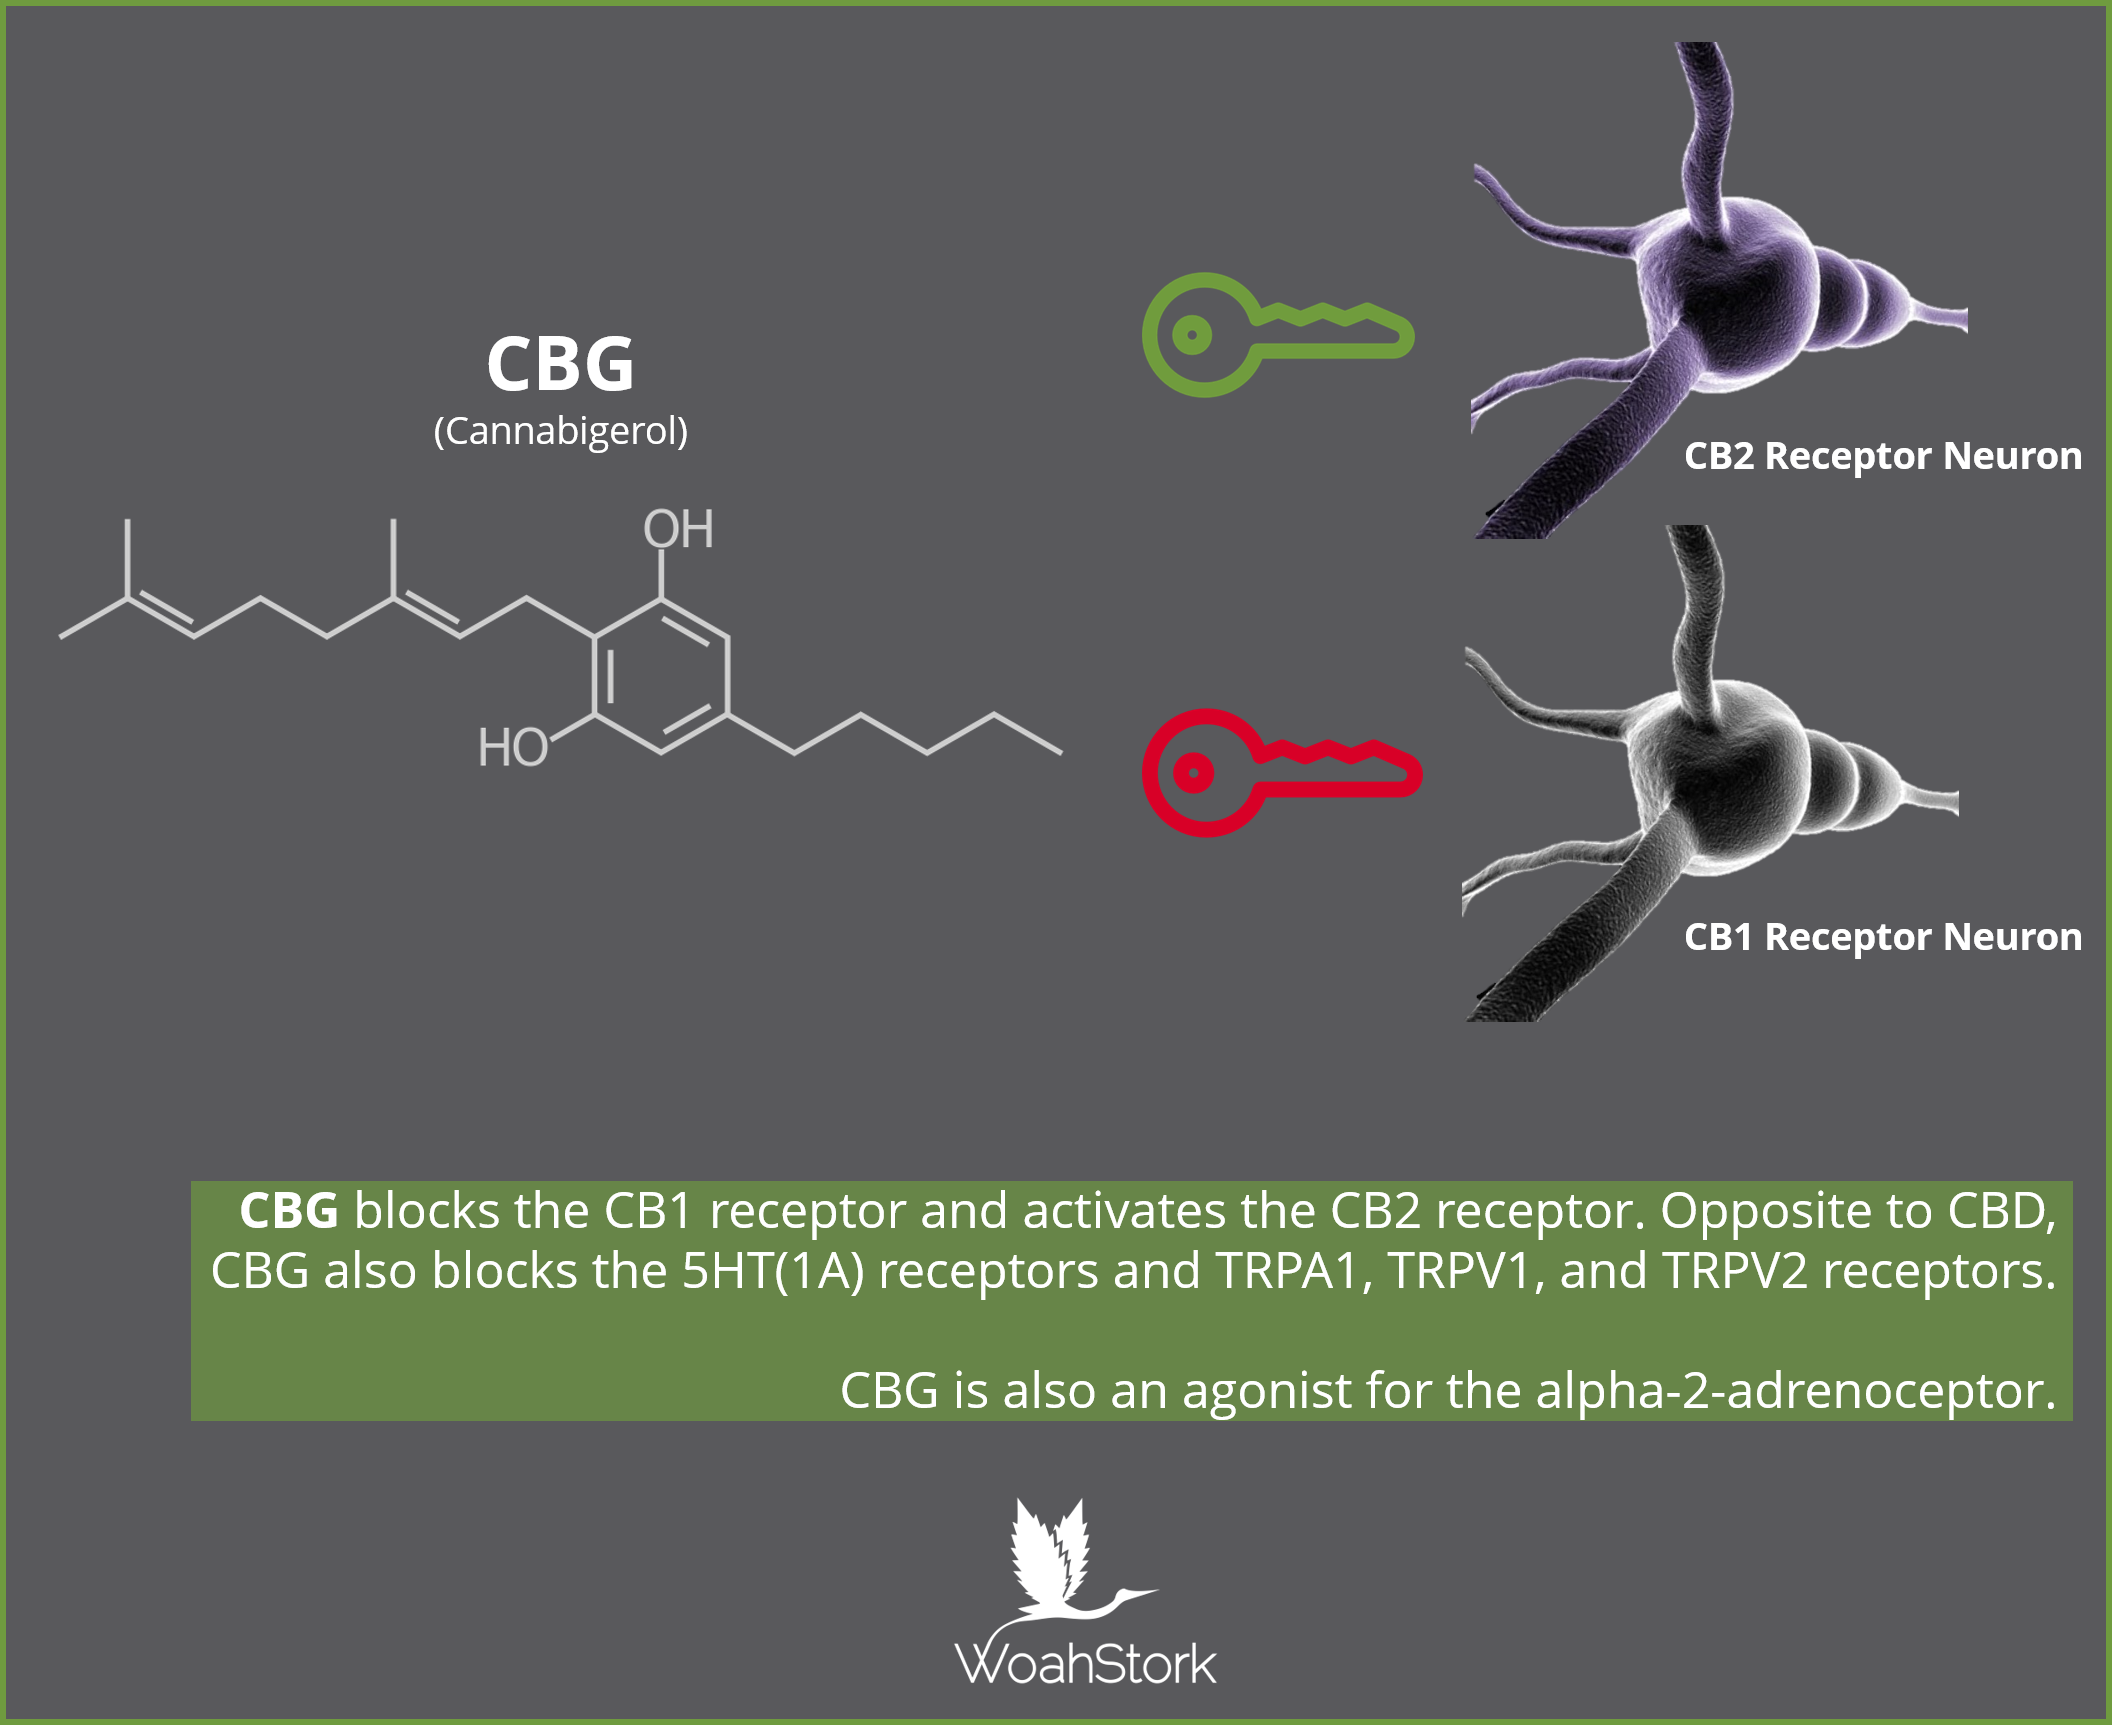 CBG activates CB2 and blocks CB1